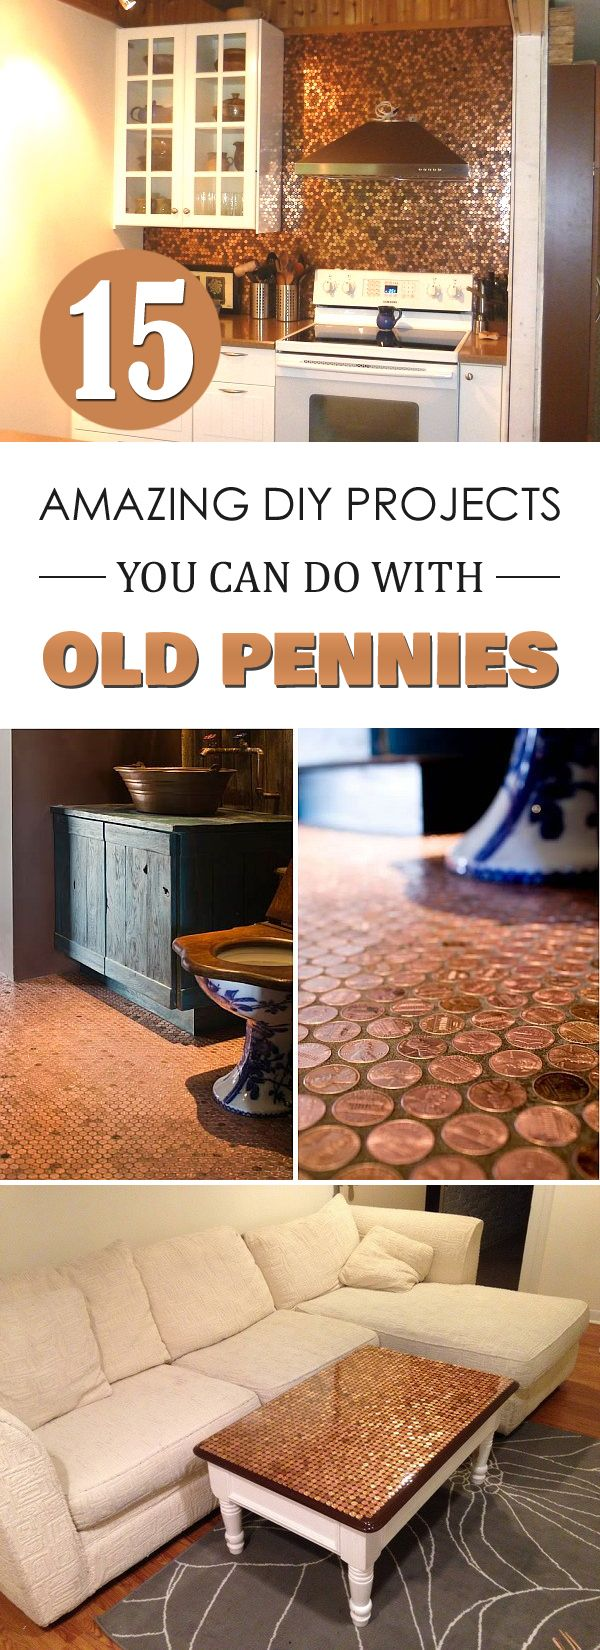 15 amazing diy projects you can do with old pennies interior design pinterest m nzen. Black Bedroom Furniture Sets. Home Design Ideas